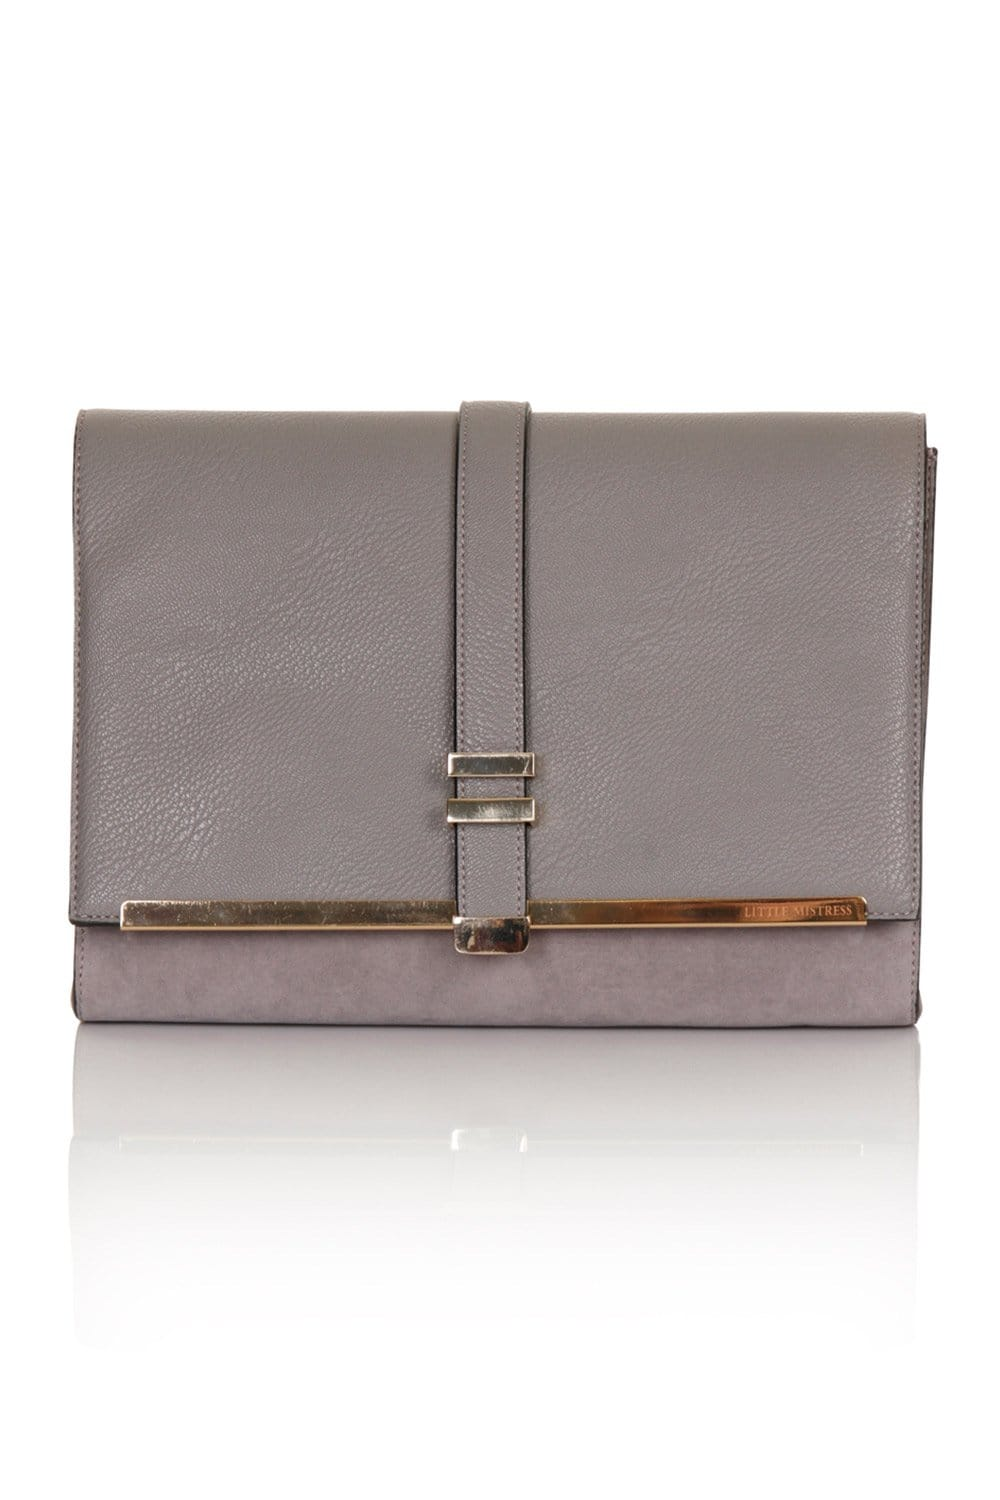 Little Mistress Handbags Grey Suede And Leather Clutch Bag